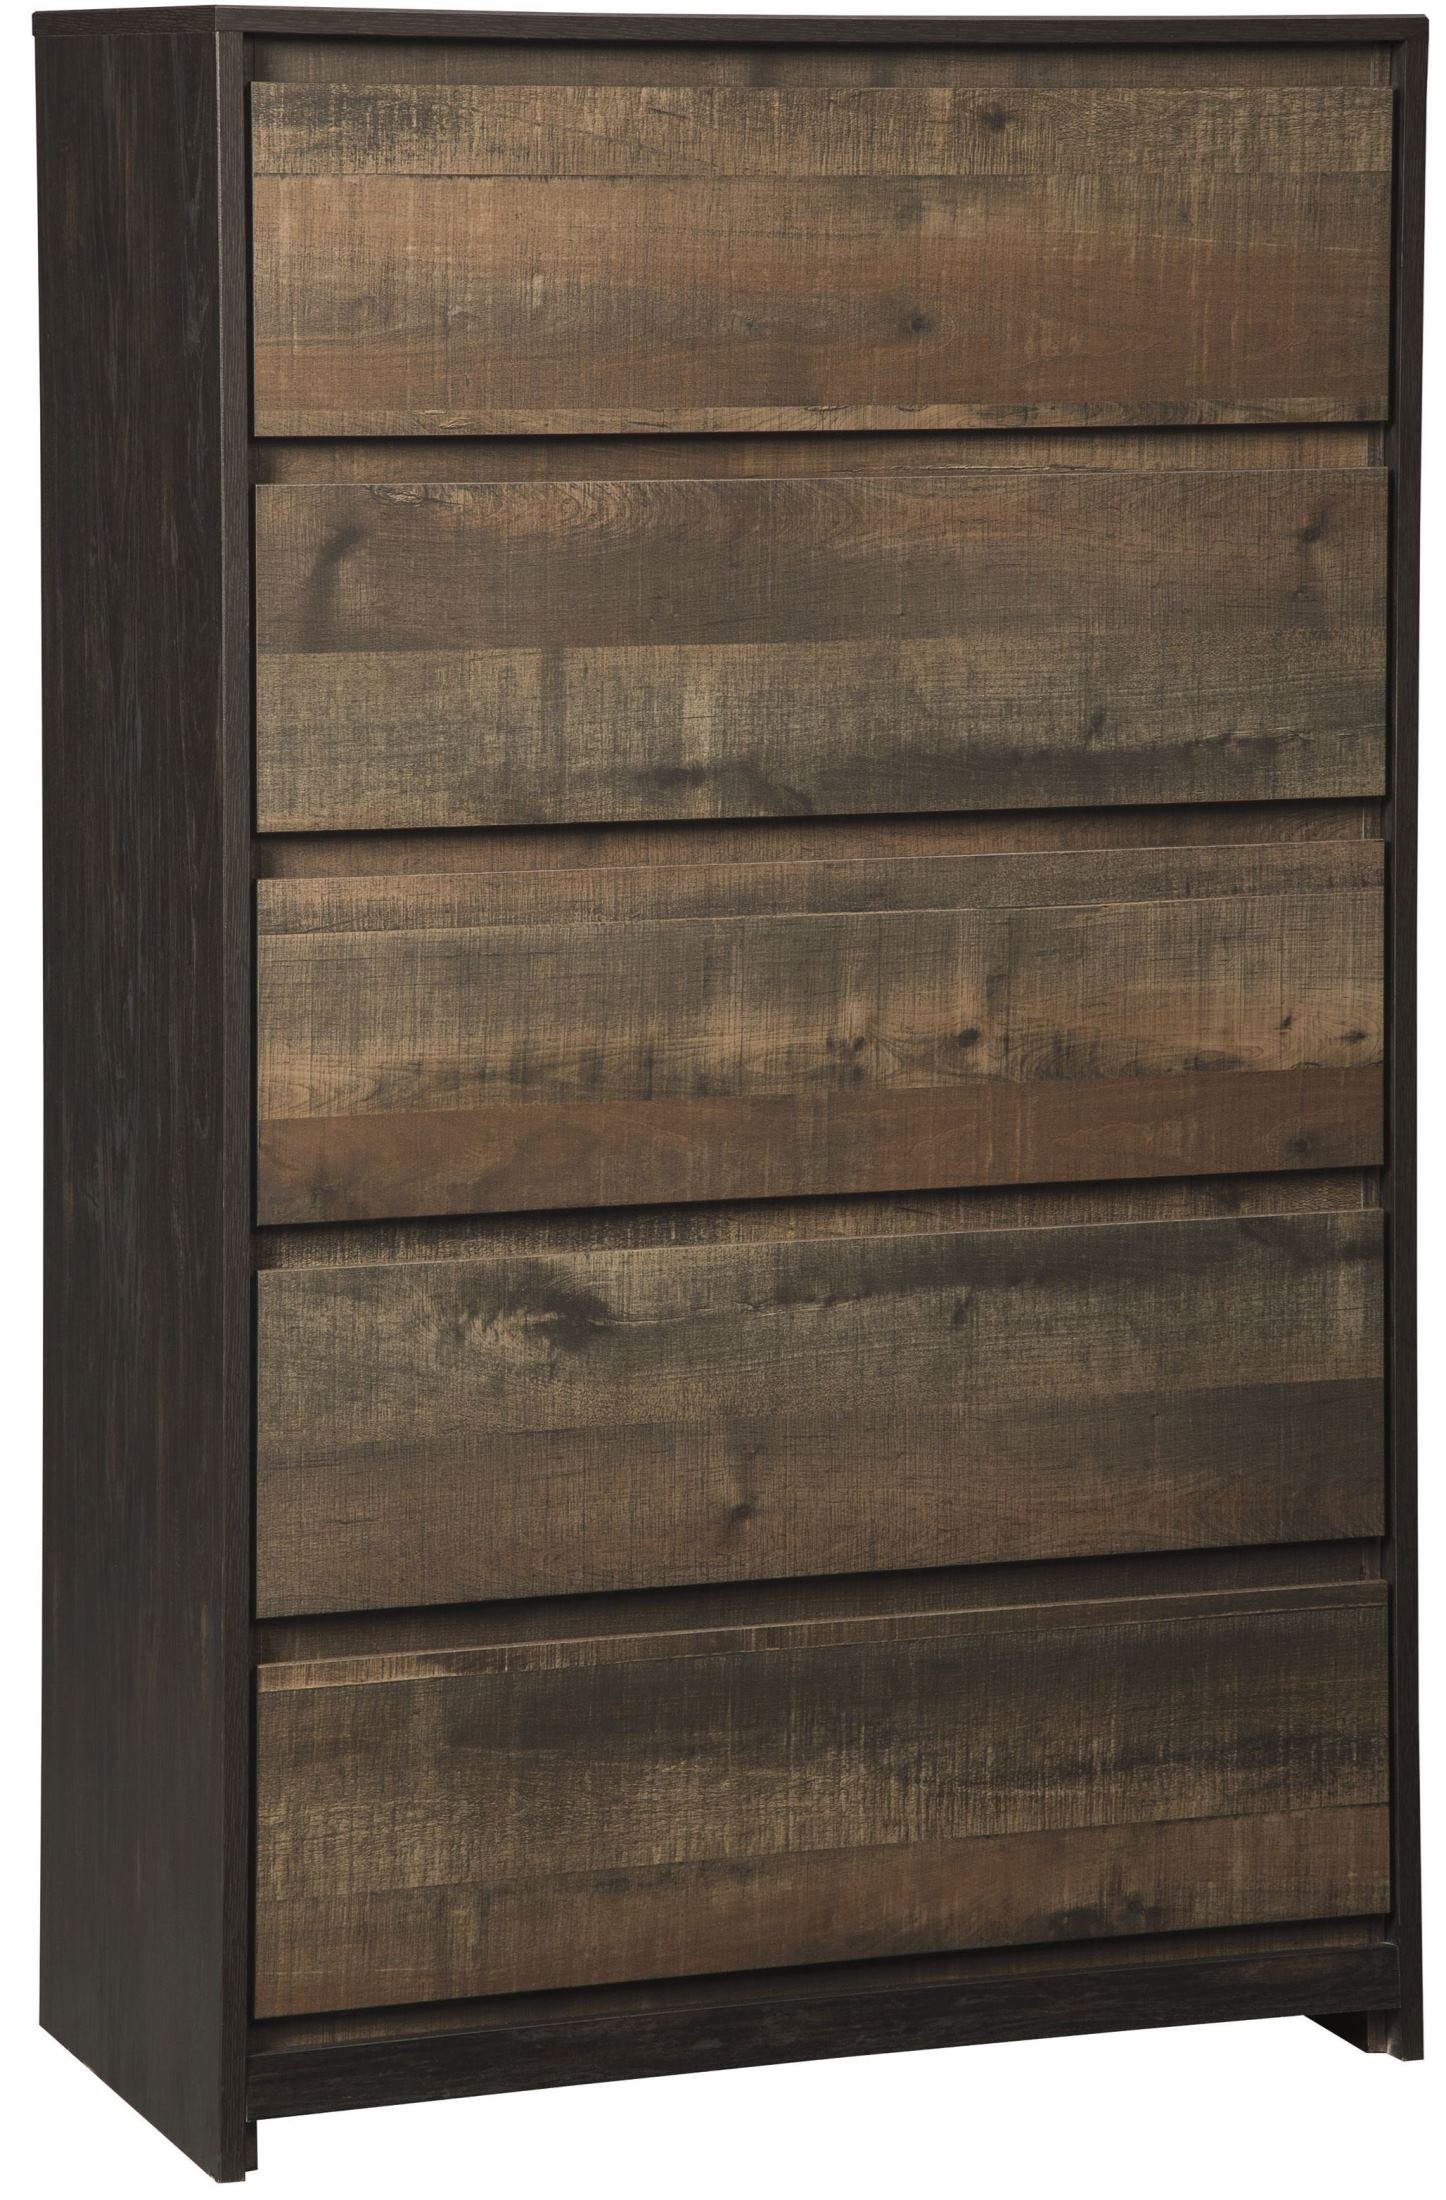 Signature Design by Ashley B320-46 Windlore Rustic Dresser Chest of Drawers, One Size